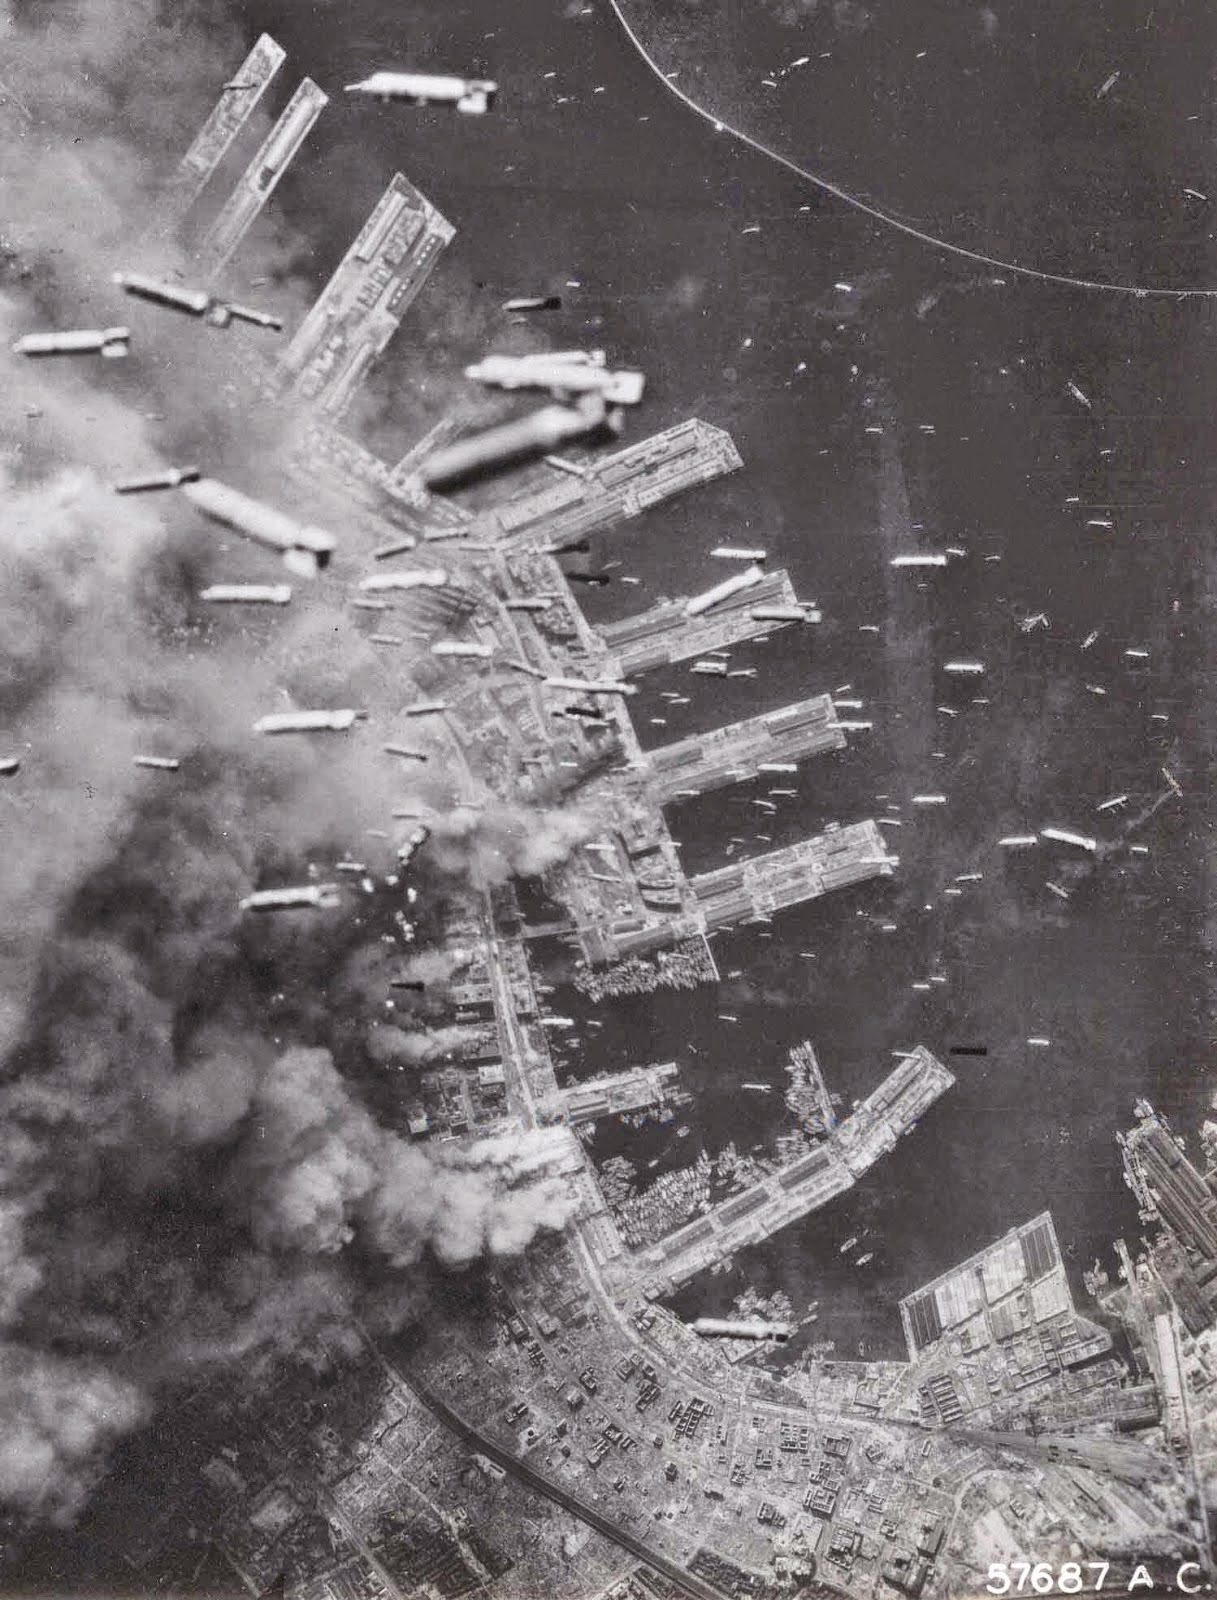 Bombs dropped on Kobe, Japan (1945).